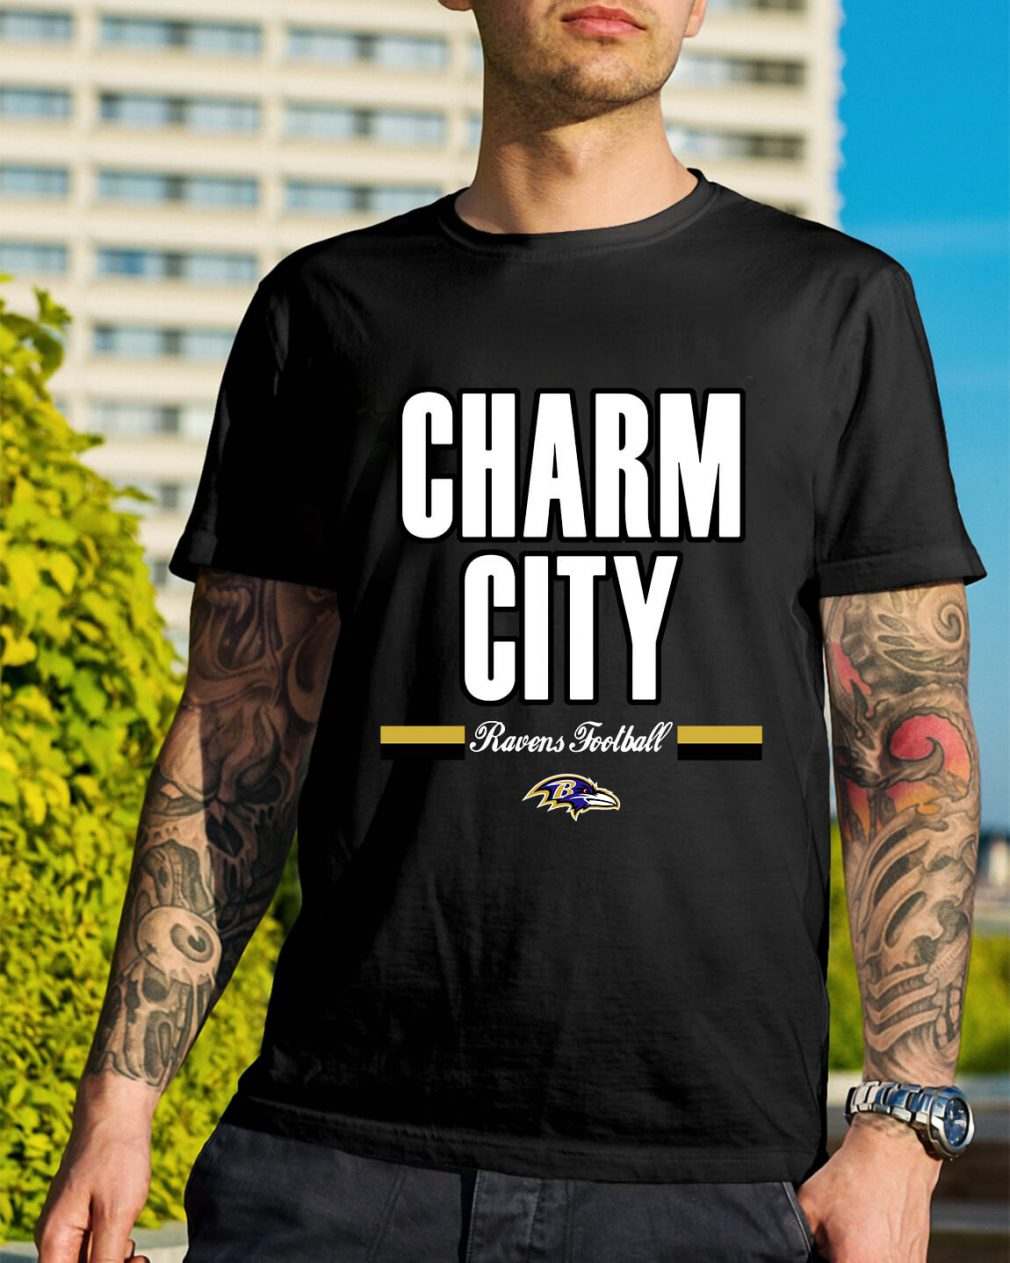 Charm city Ravens football shirt